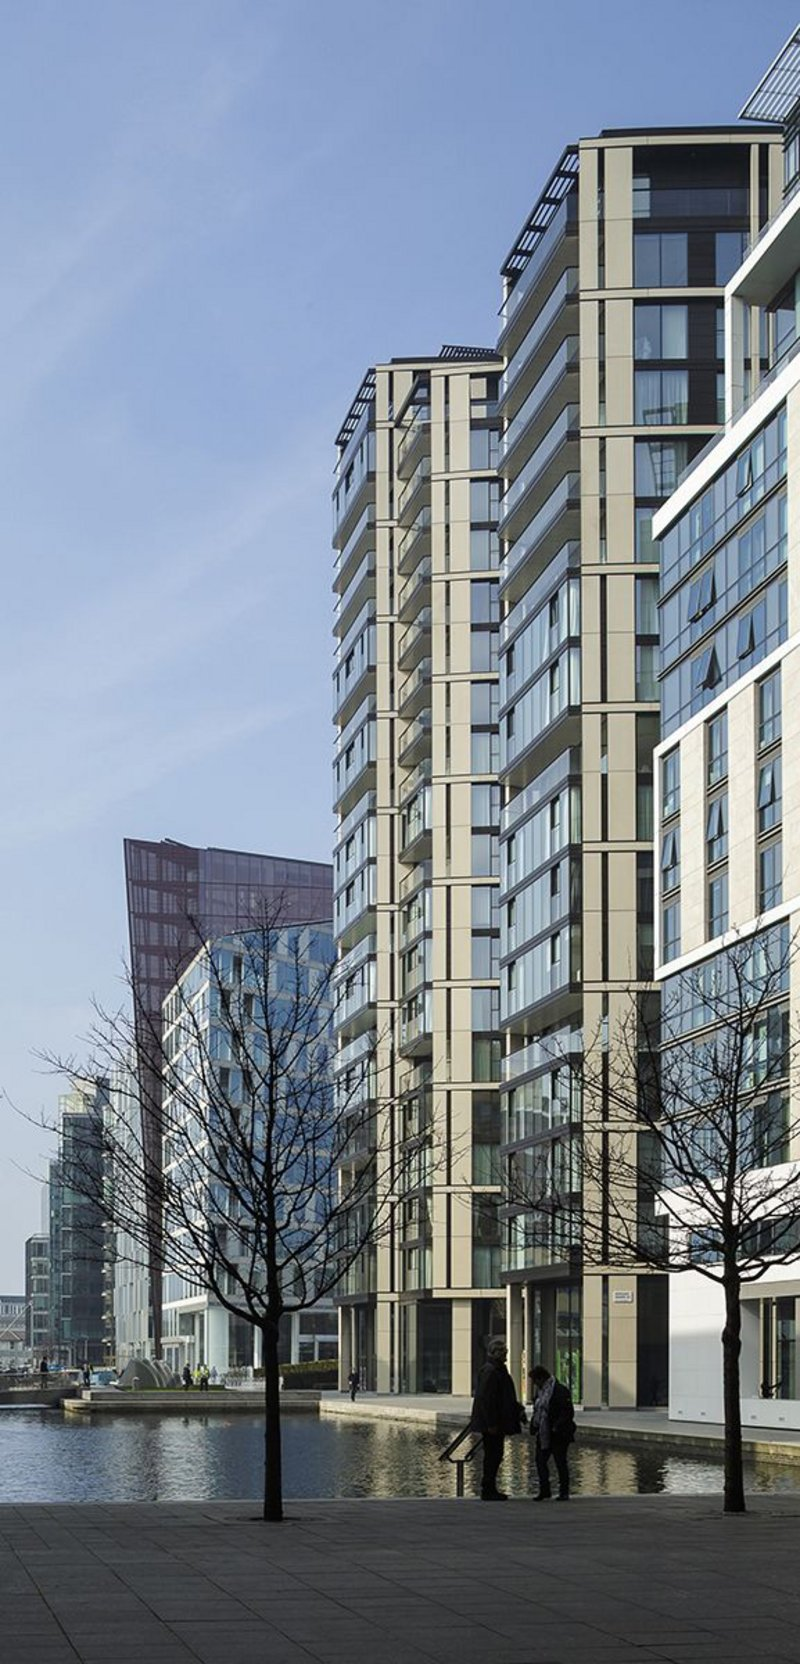 Robin Partington & Partners' 3 Merchant Square at Paddington. Mark William-Jones was the project architect on the 21-storey tower for four years.